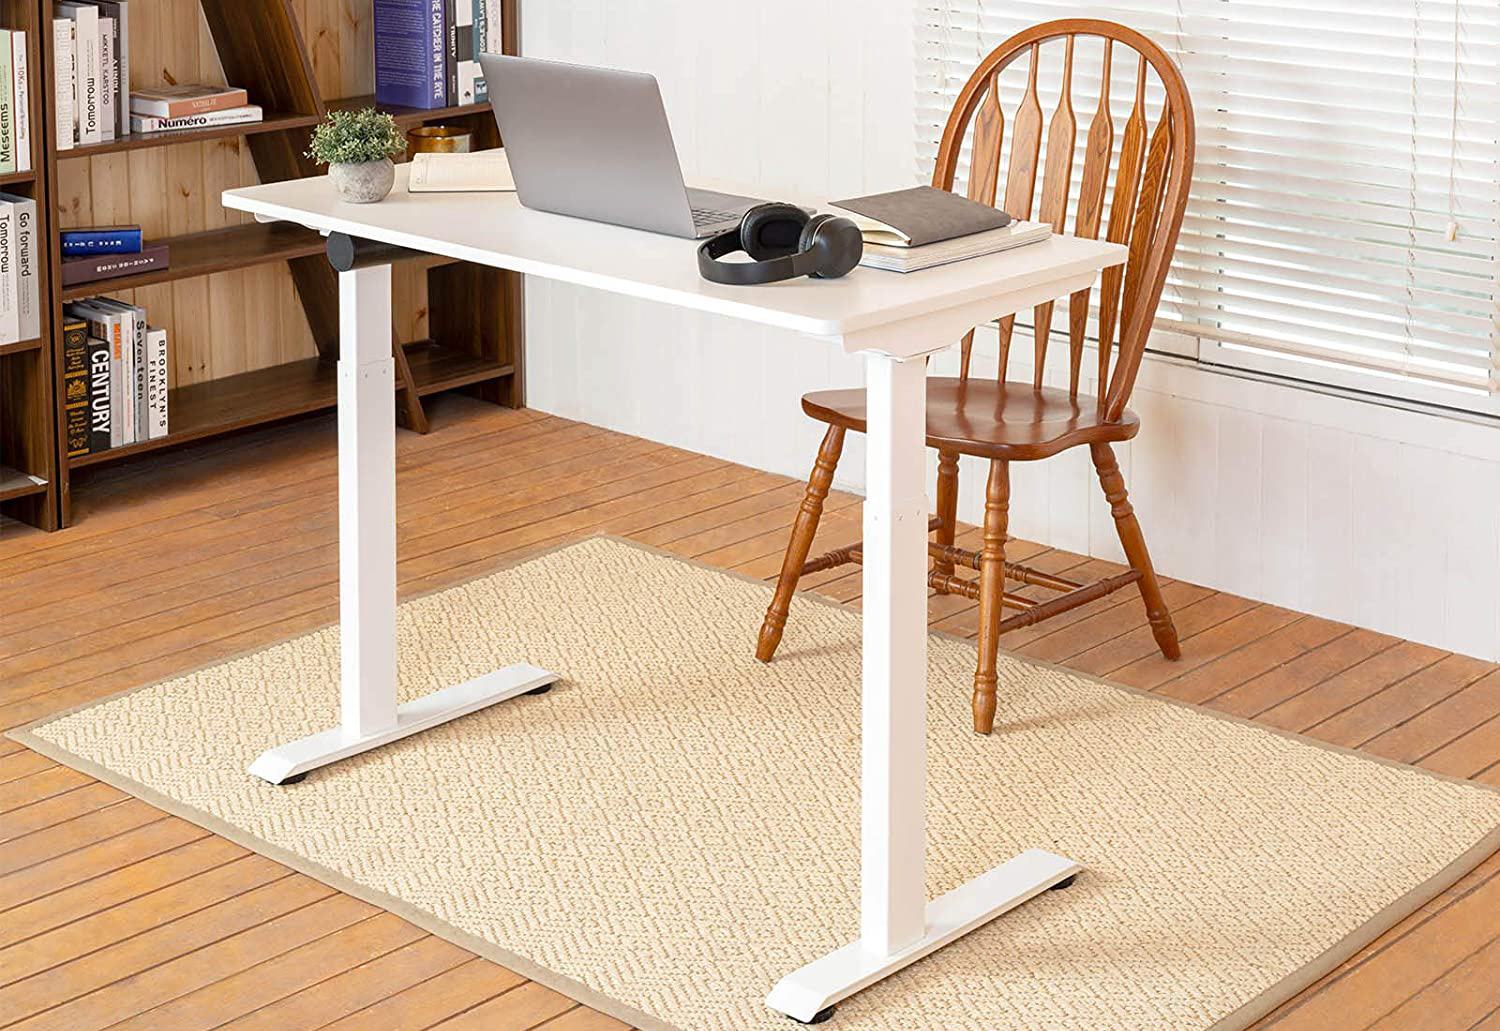 Black Friday deal gets you an top-rated electric standing desk for just $219